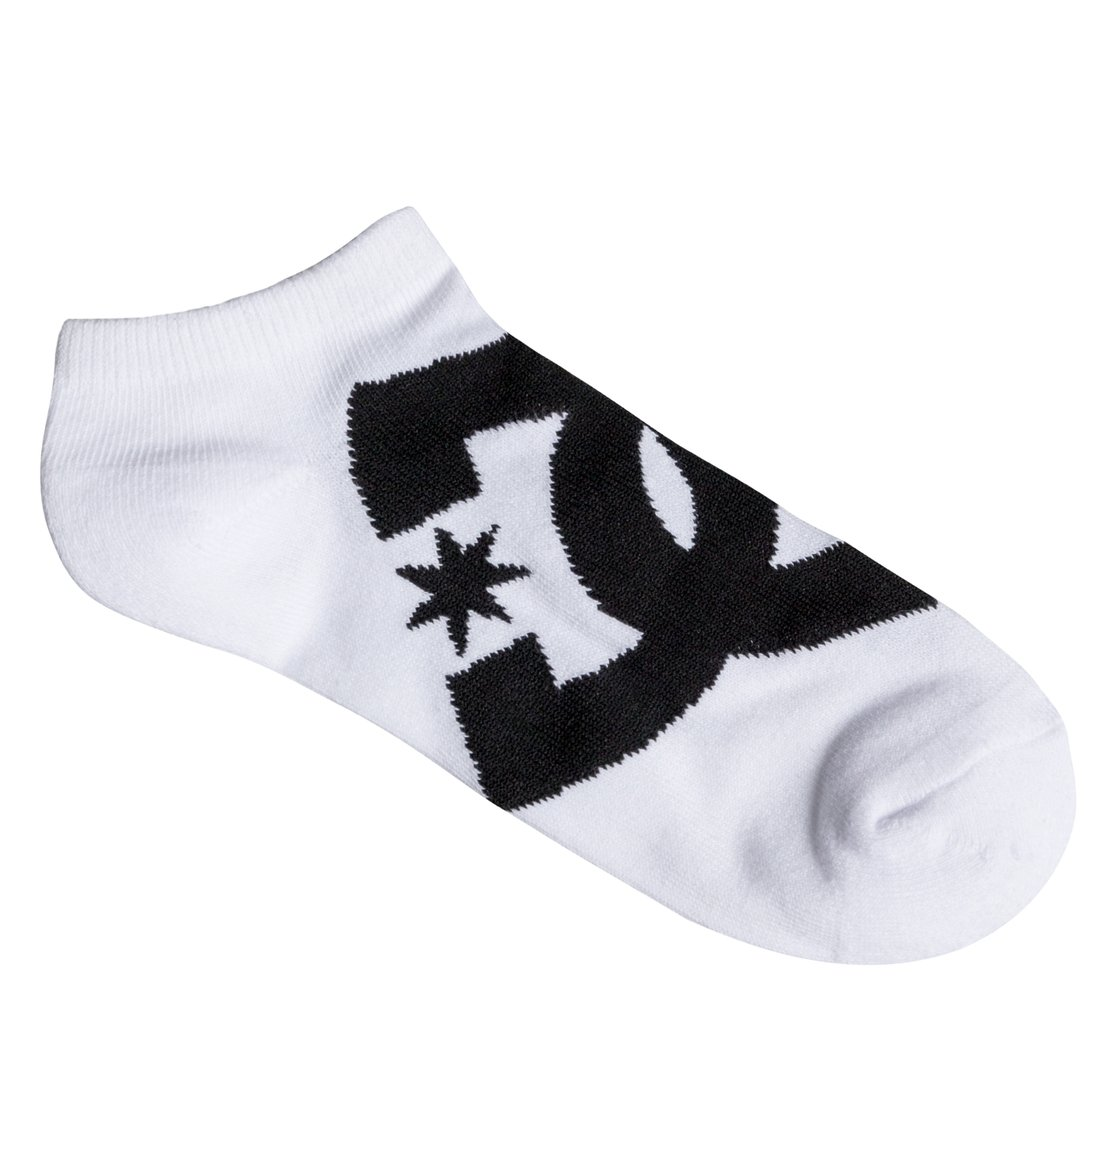 mens suspension ankle socks 3 pack adyaa03055 dc shoes